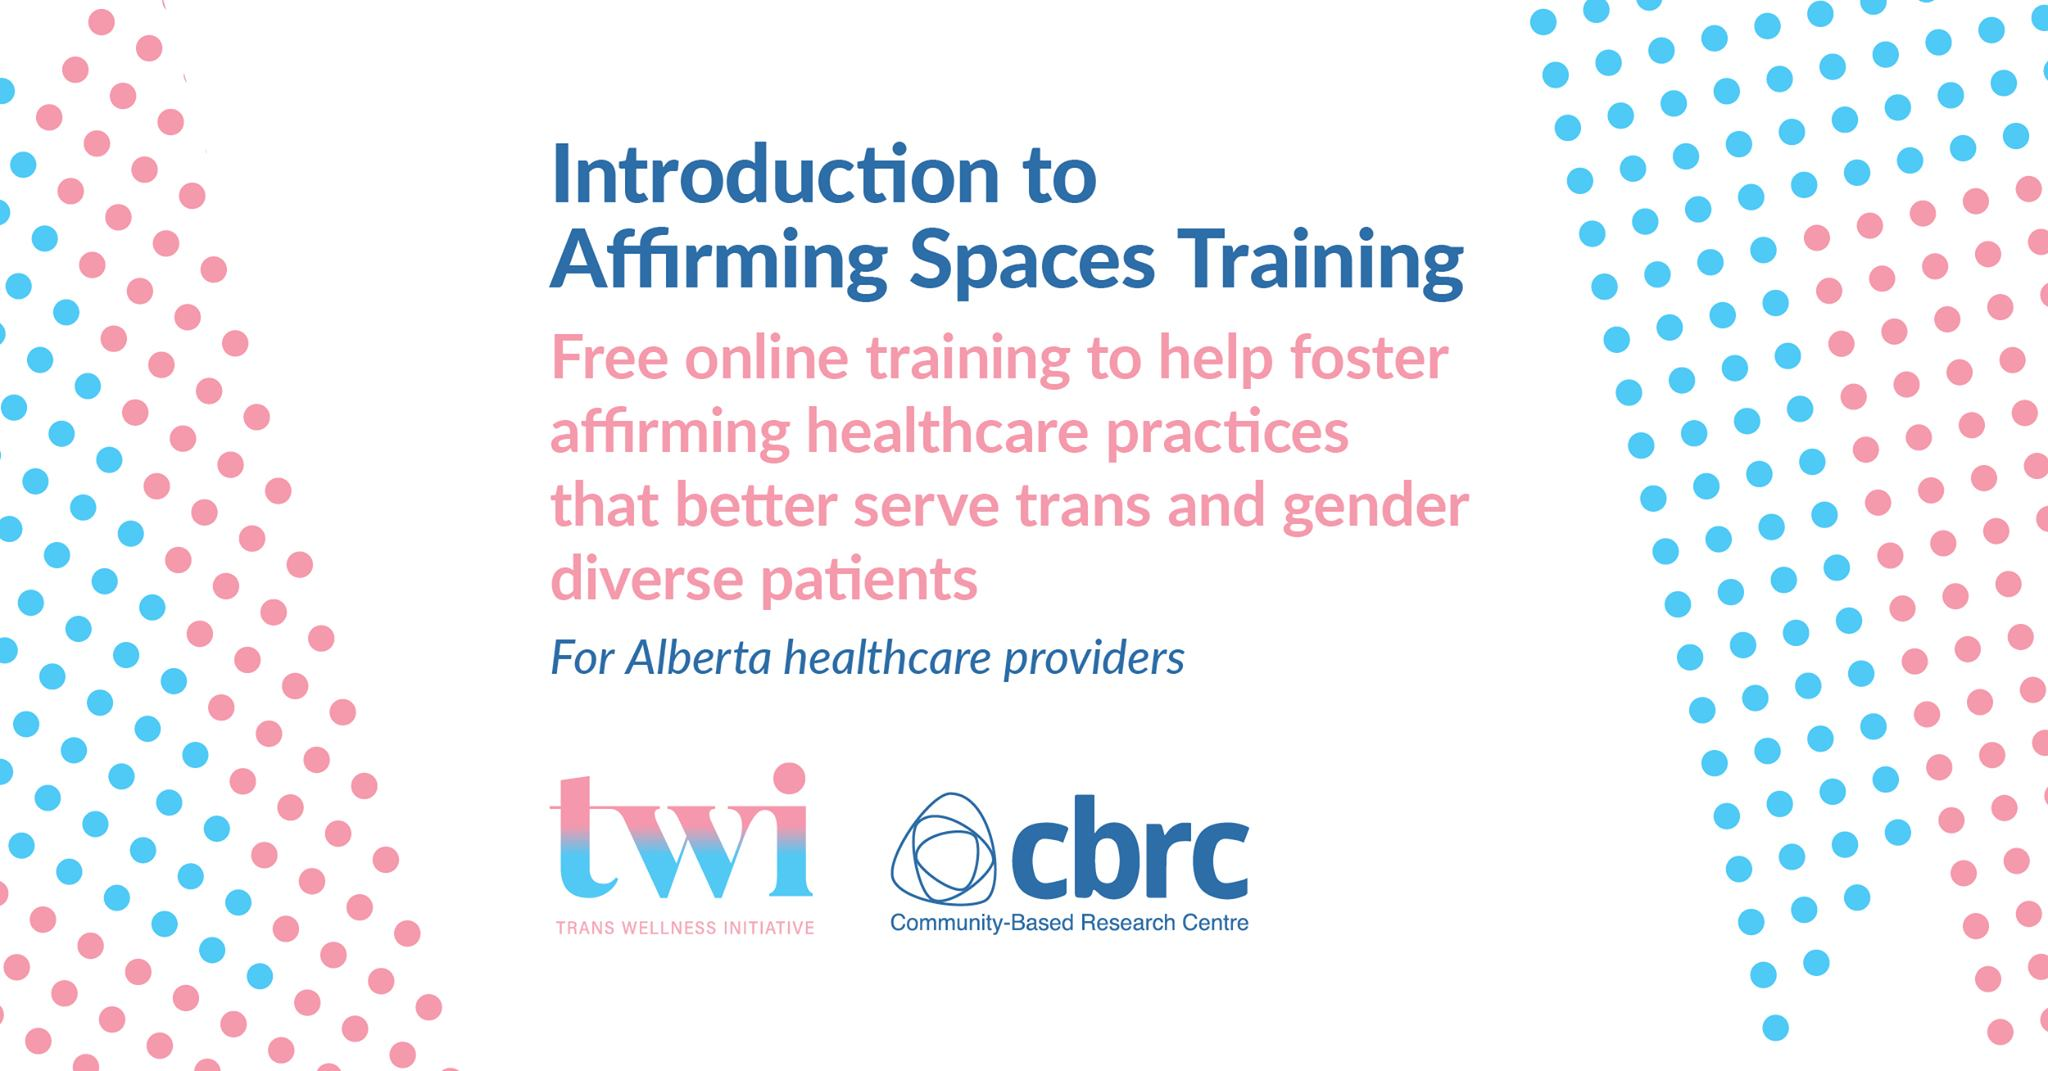 Introduction to Affirming Spaces Training